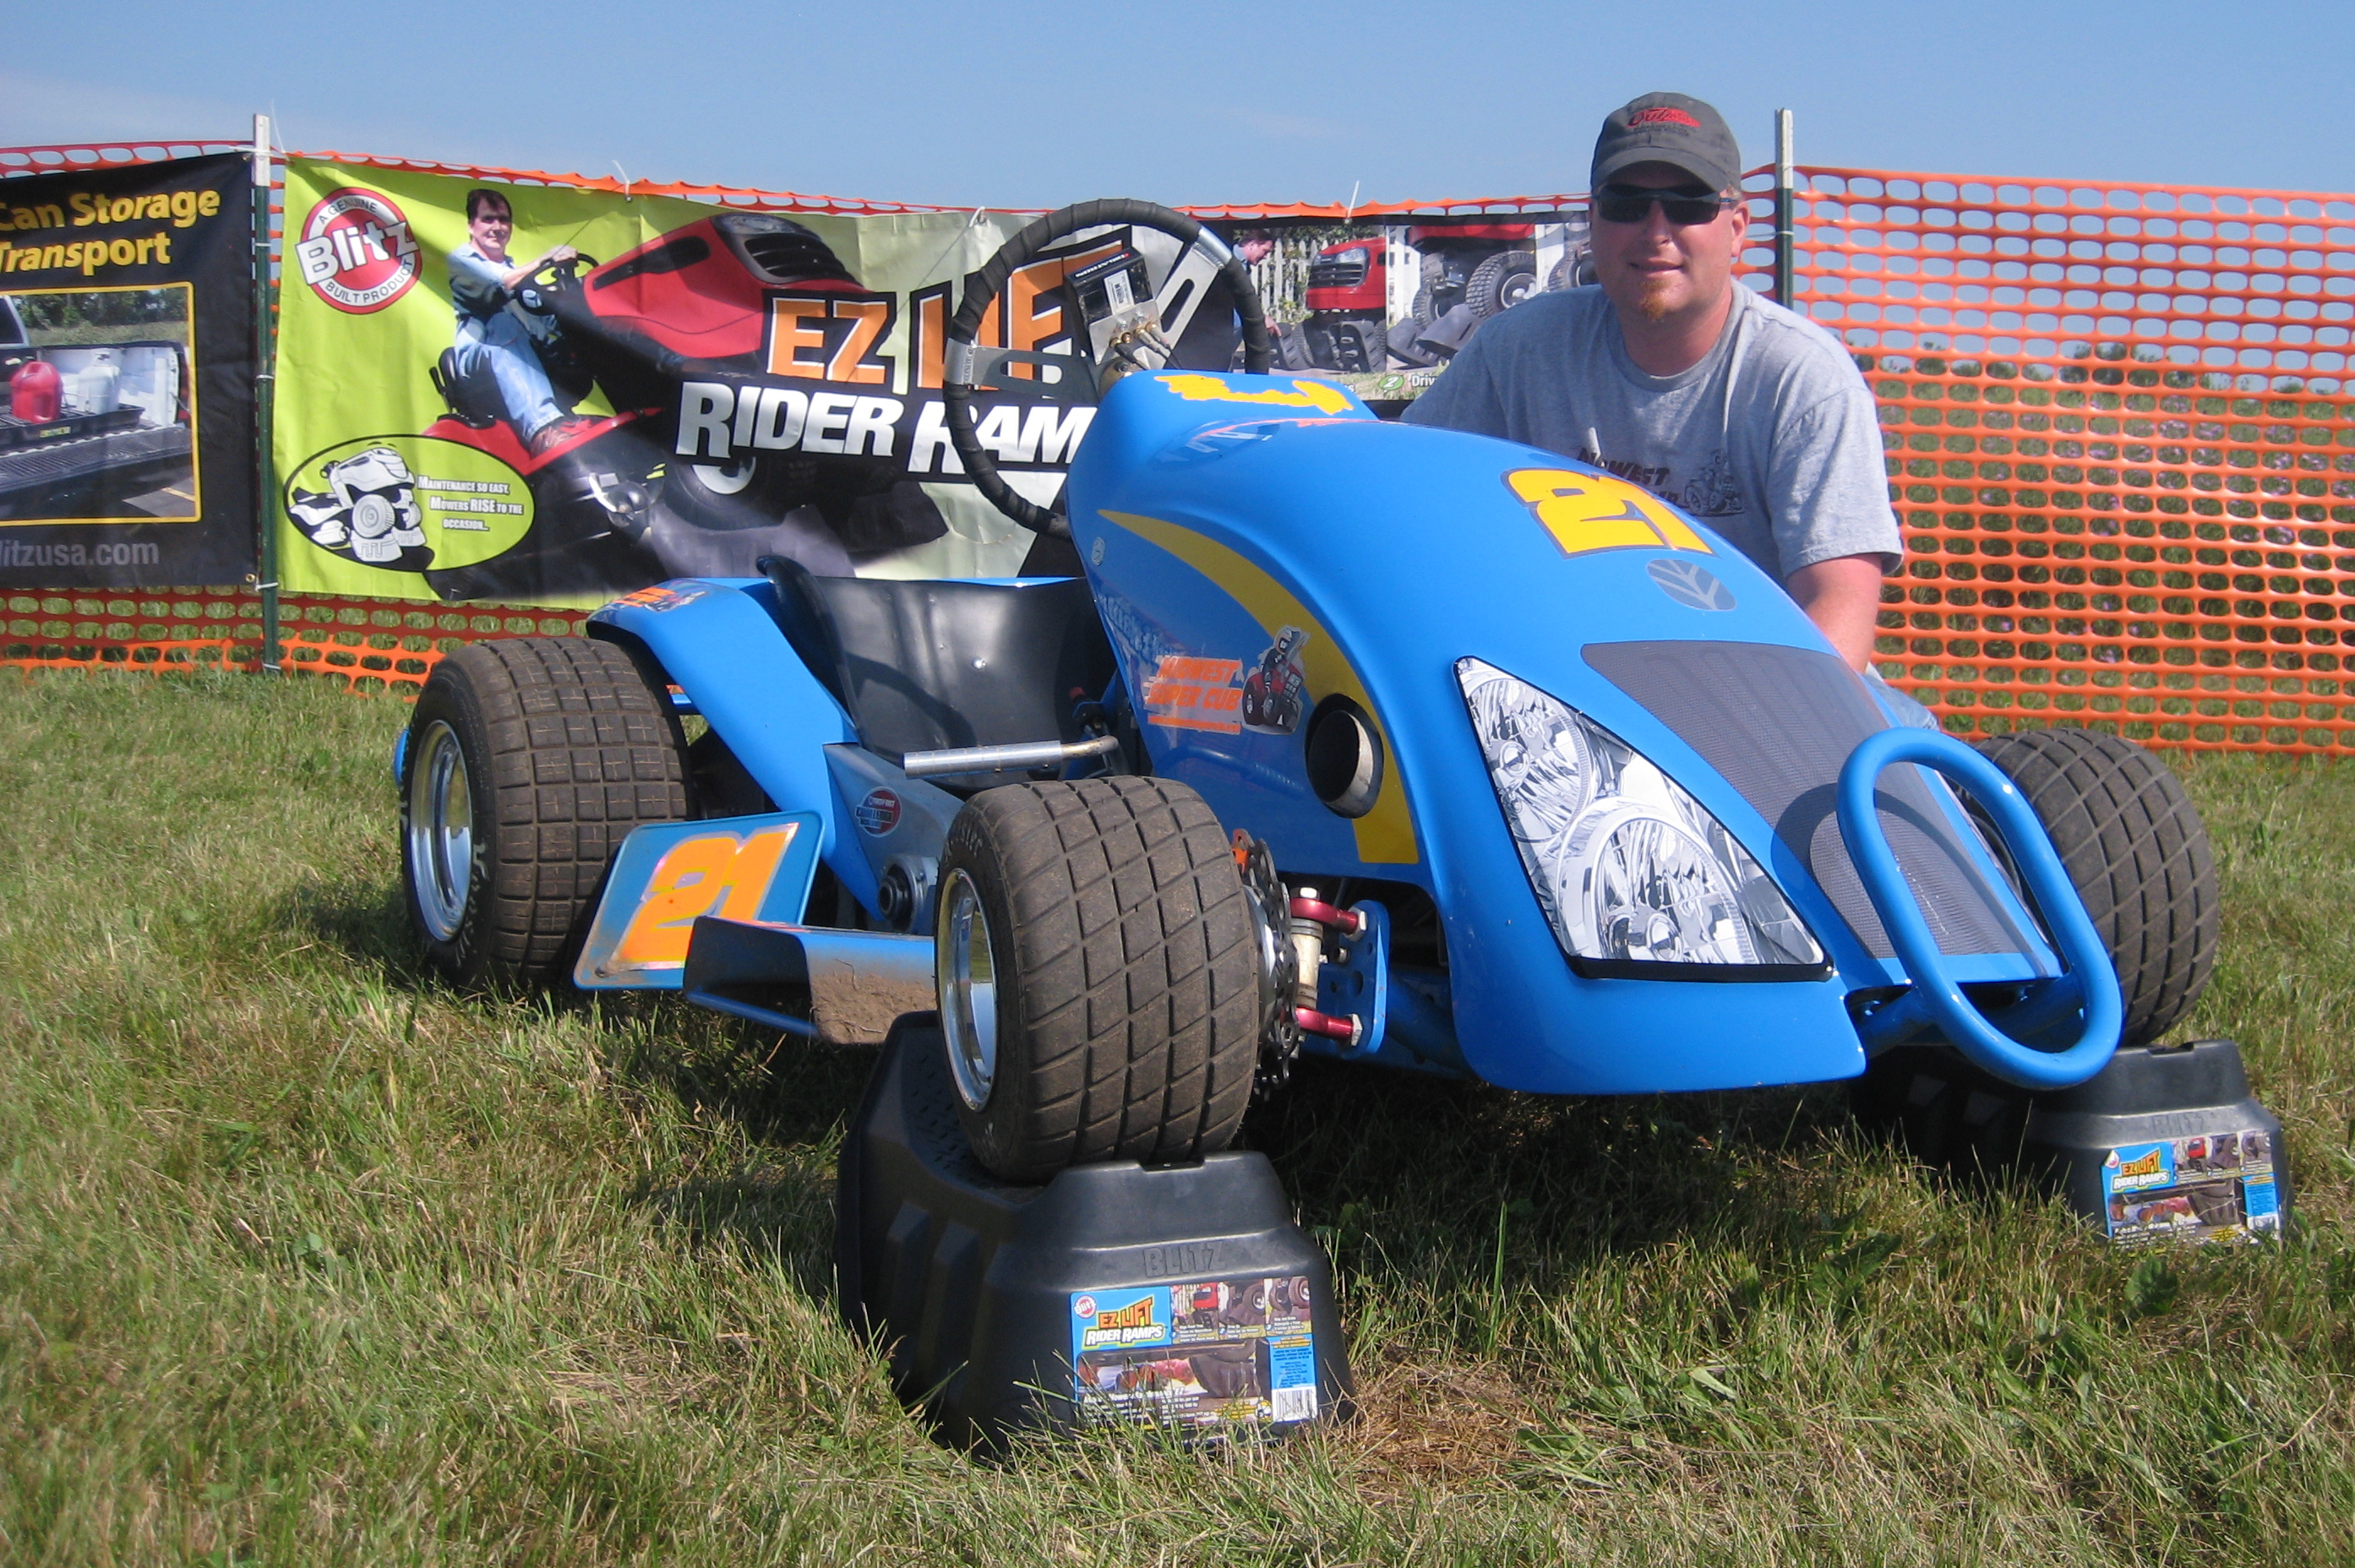 Lawn Mower Racing >> Blitz USA EZ Lift Rider Ramps and Hand-E Hauler Sponsor ...